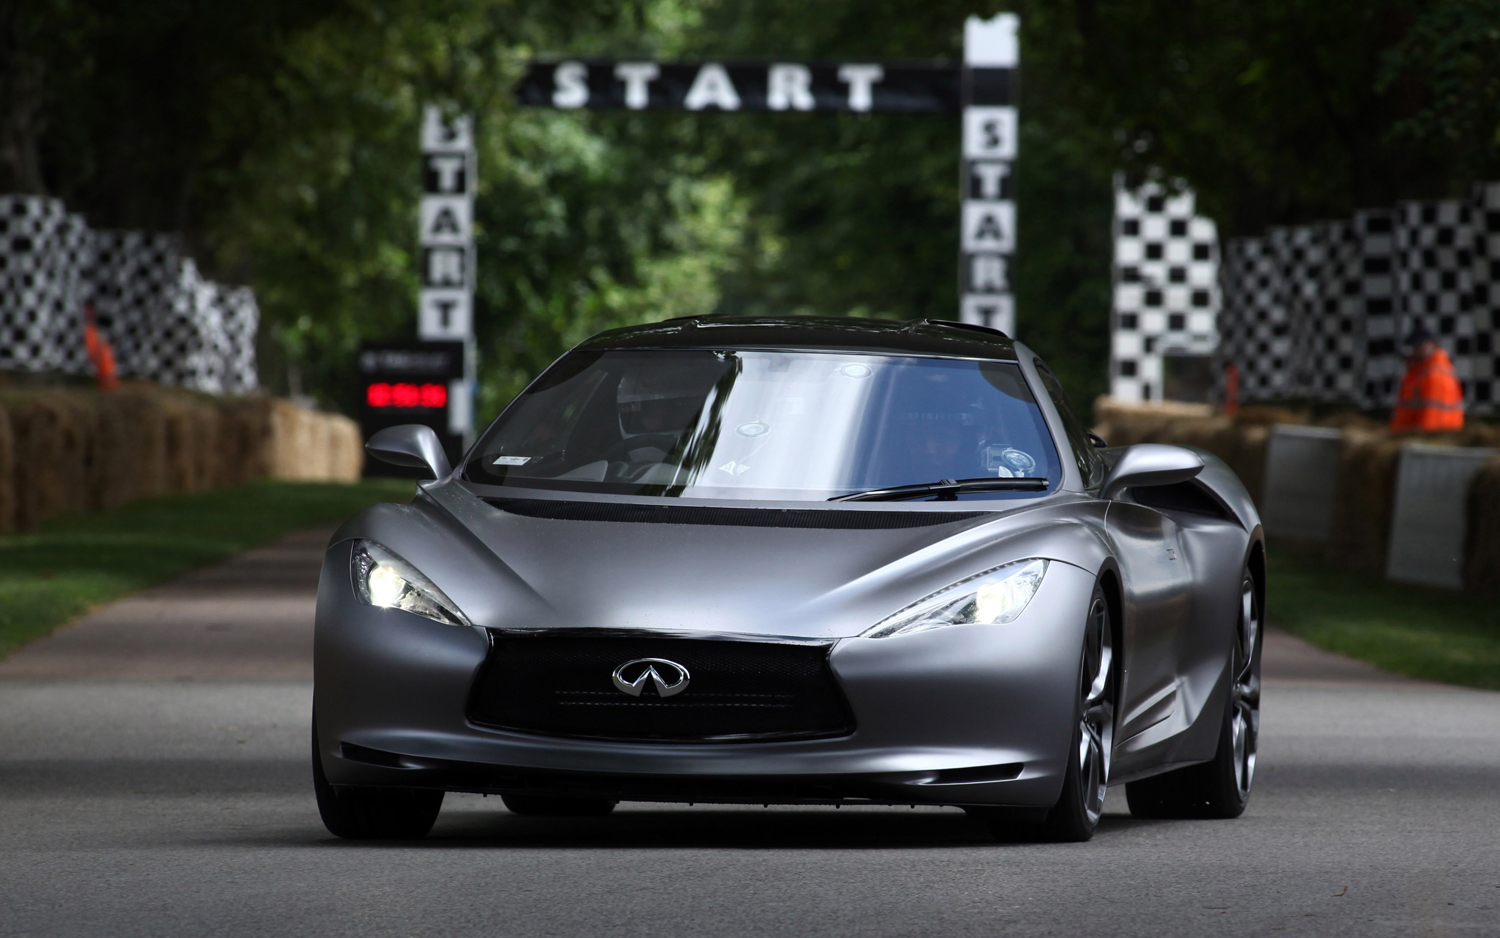 We Hear: Infiniti May Launch Halo Sports Car By 2016